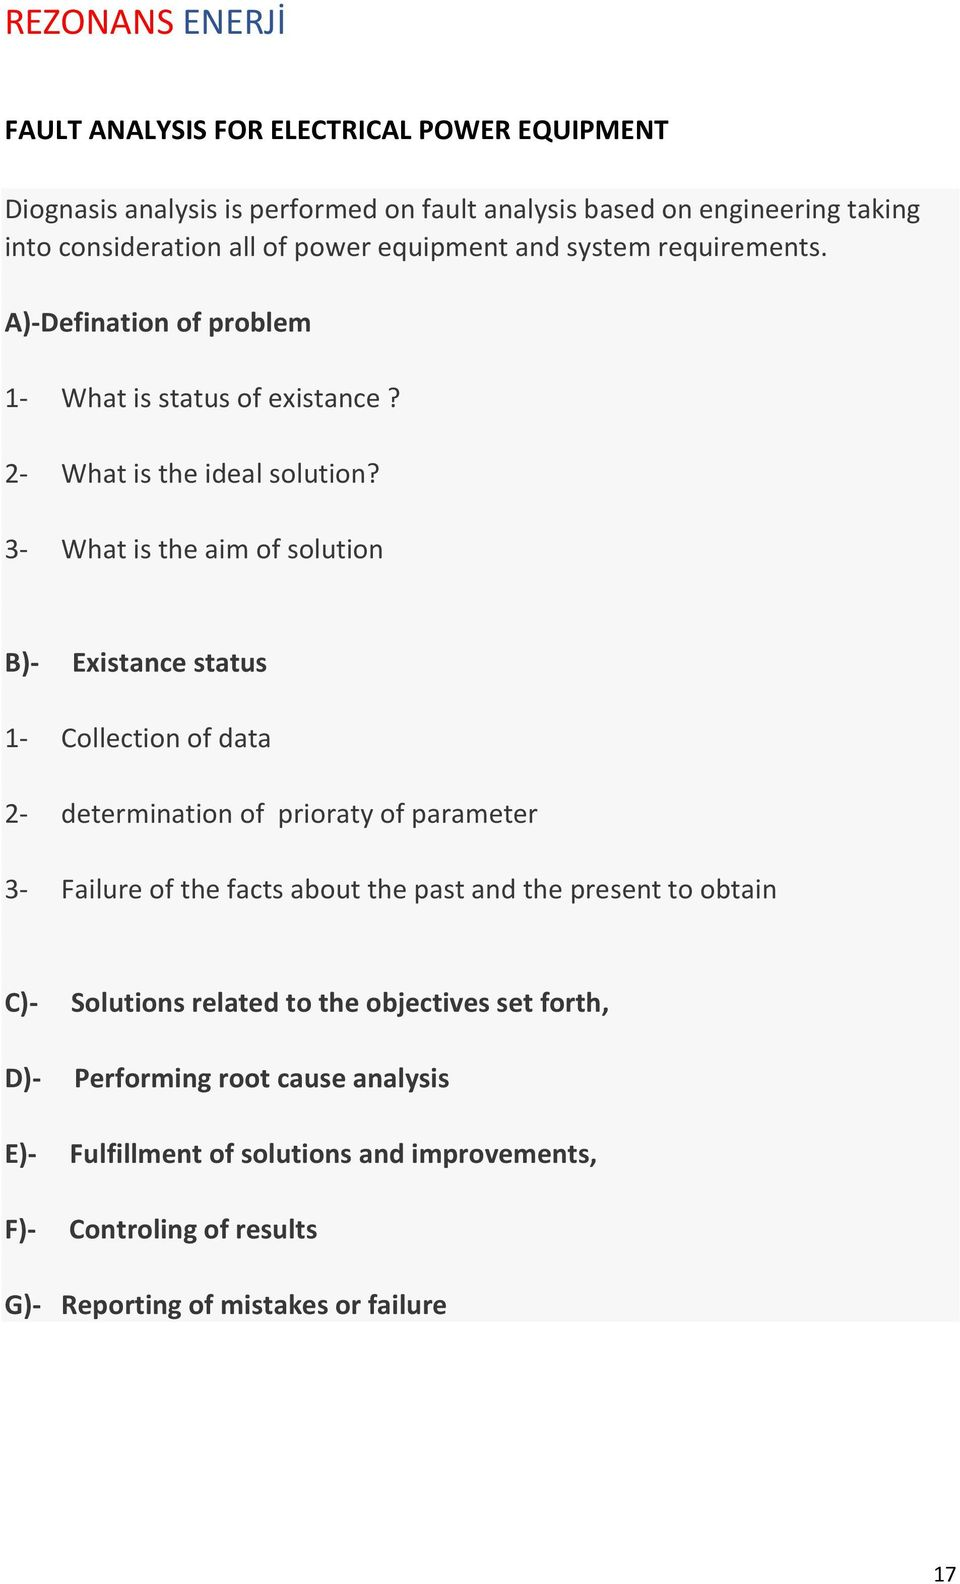 3- What is the aim of solution B)- Existance status 1- Collection of data 2- determination of prioraty of parameter 3- Failure of the facts about the past and the